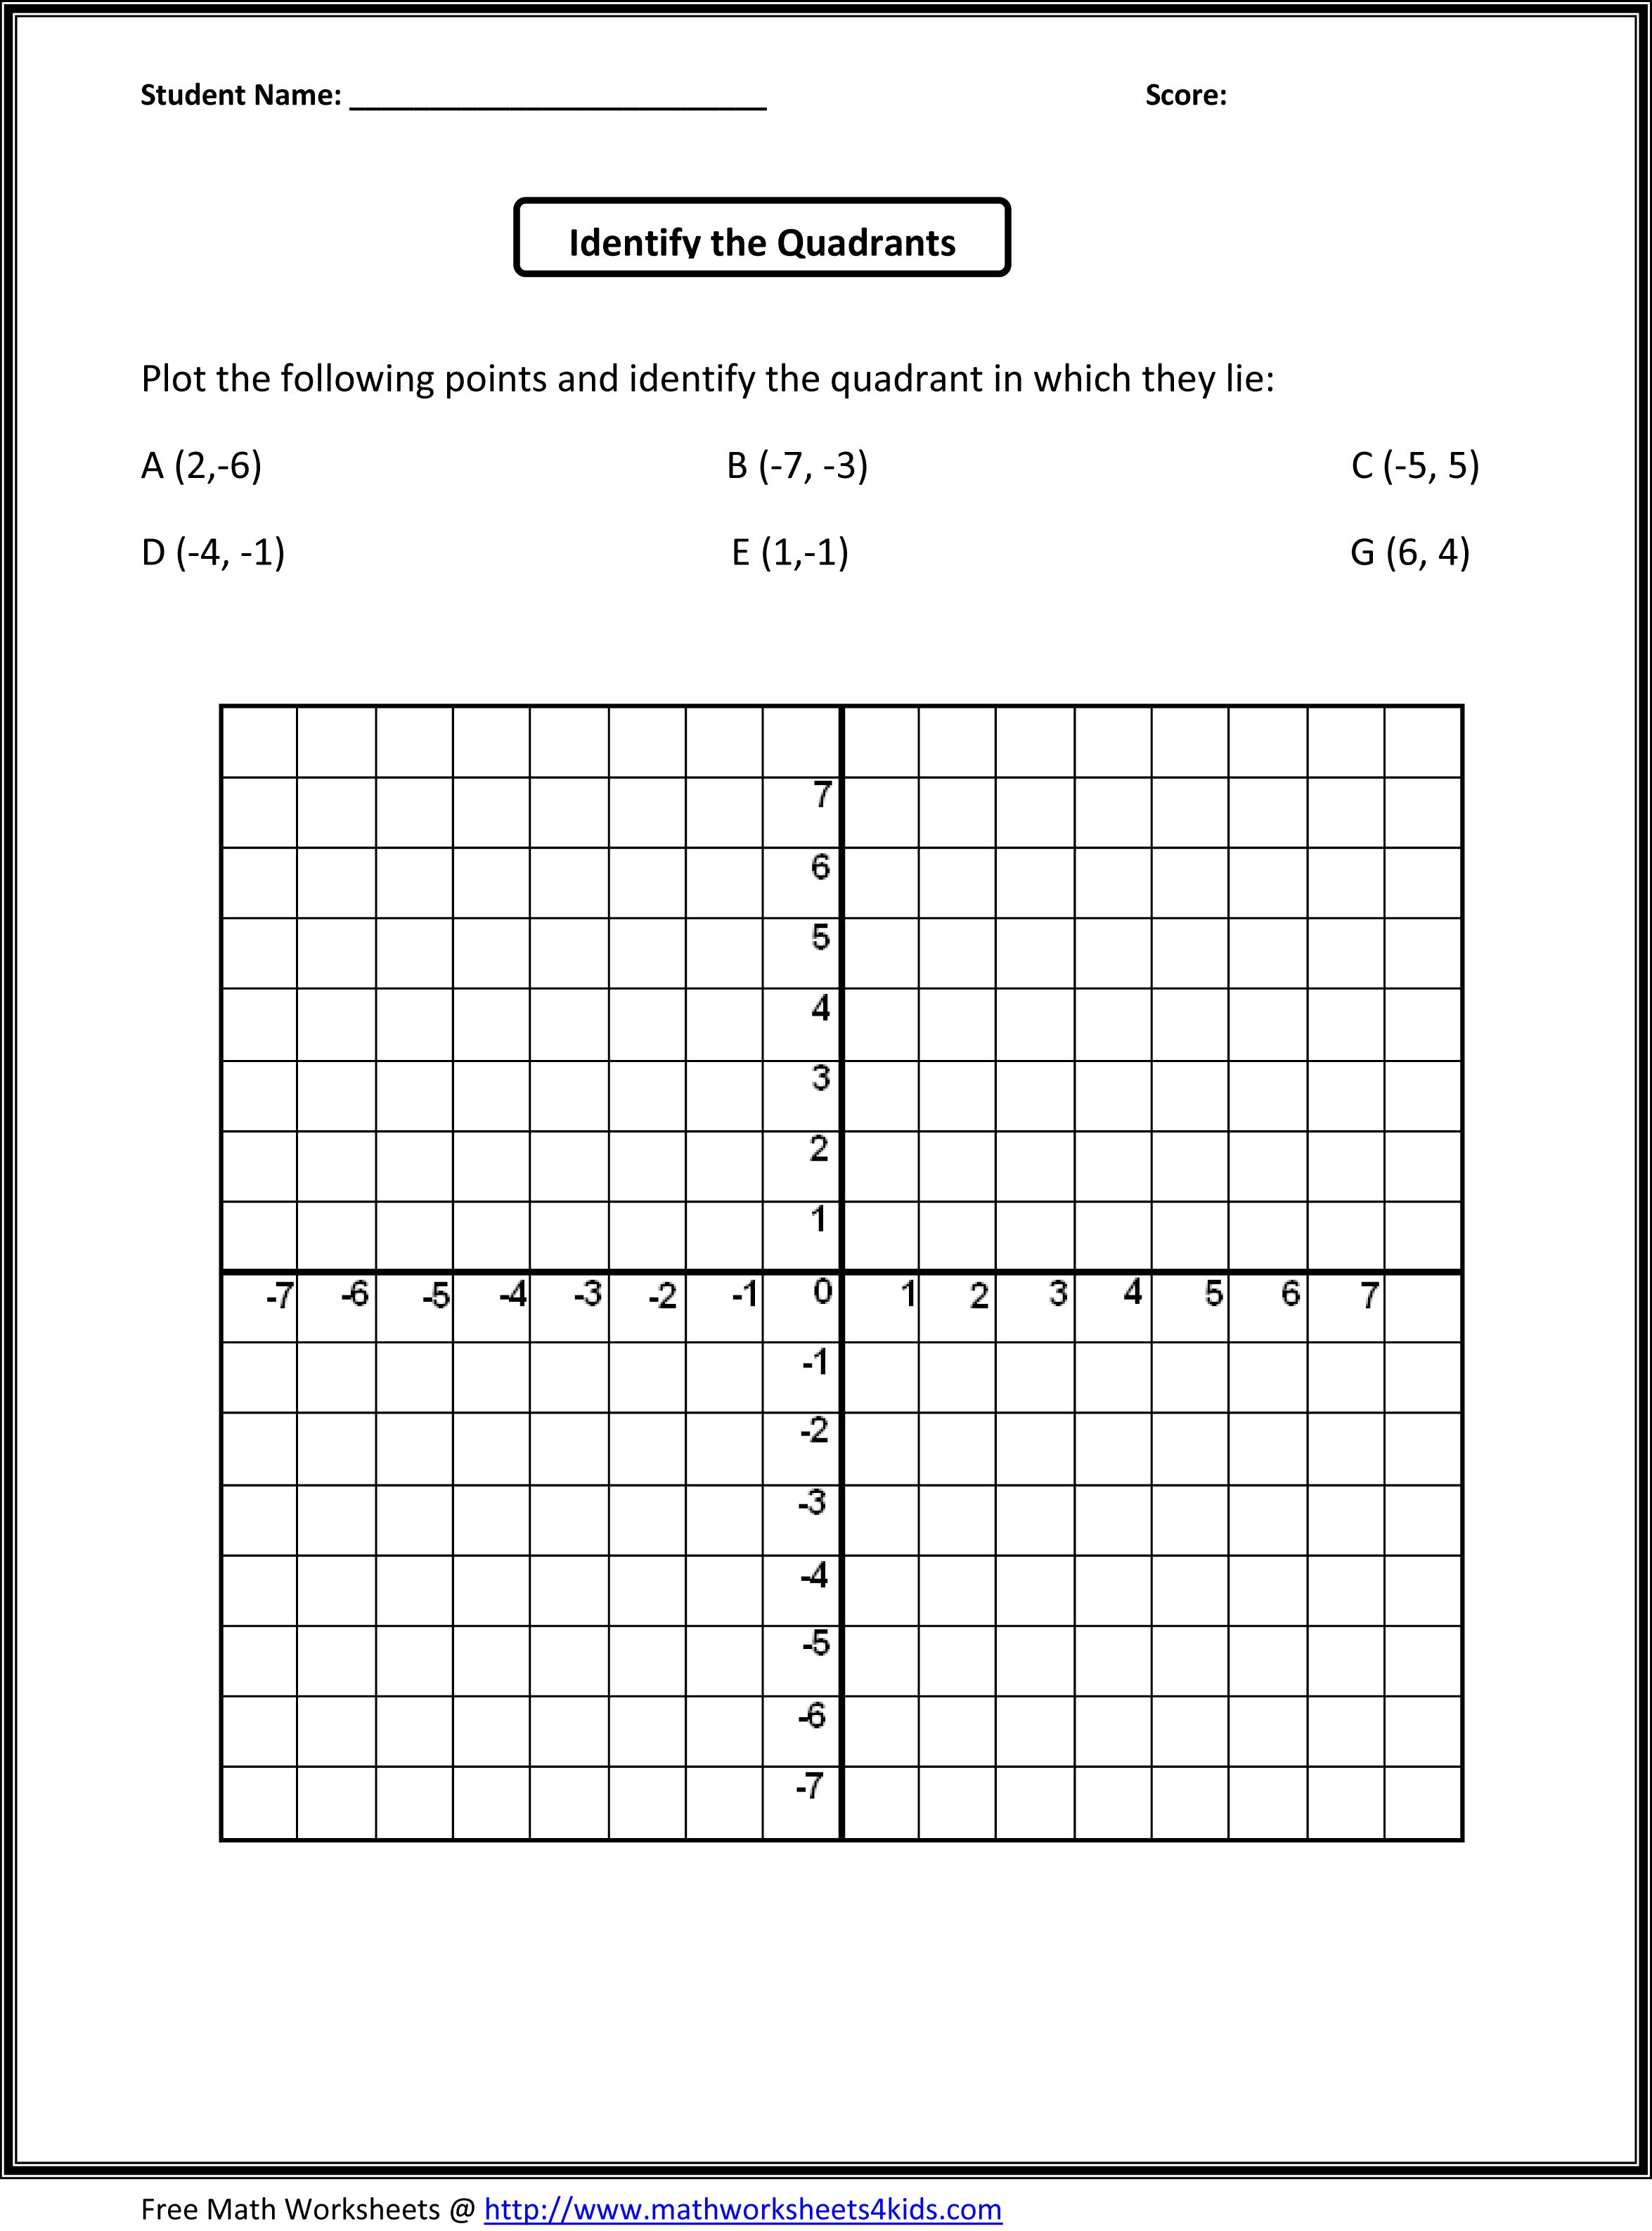 Math Worksheets For 5th Grade